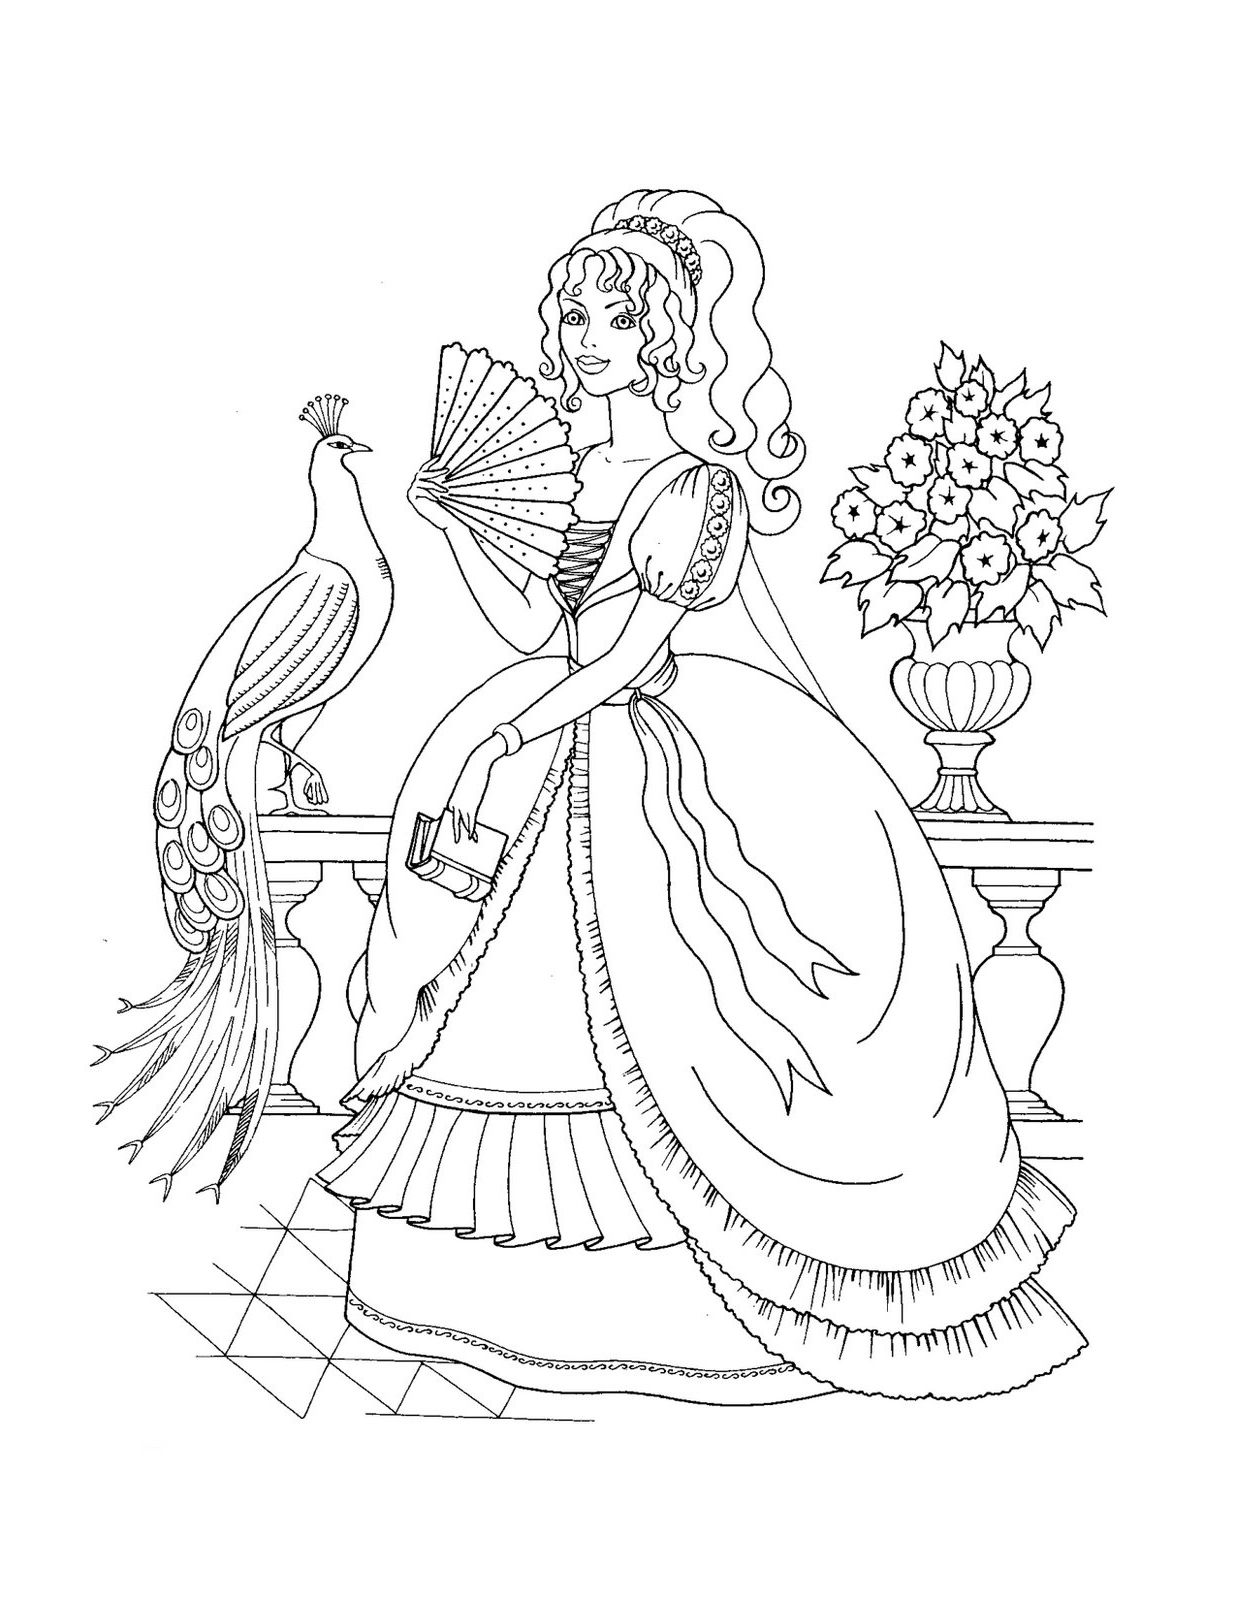 Princess coloring pages best coloring pages for kids for Little princess coloring pages